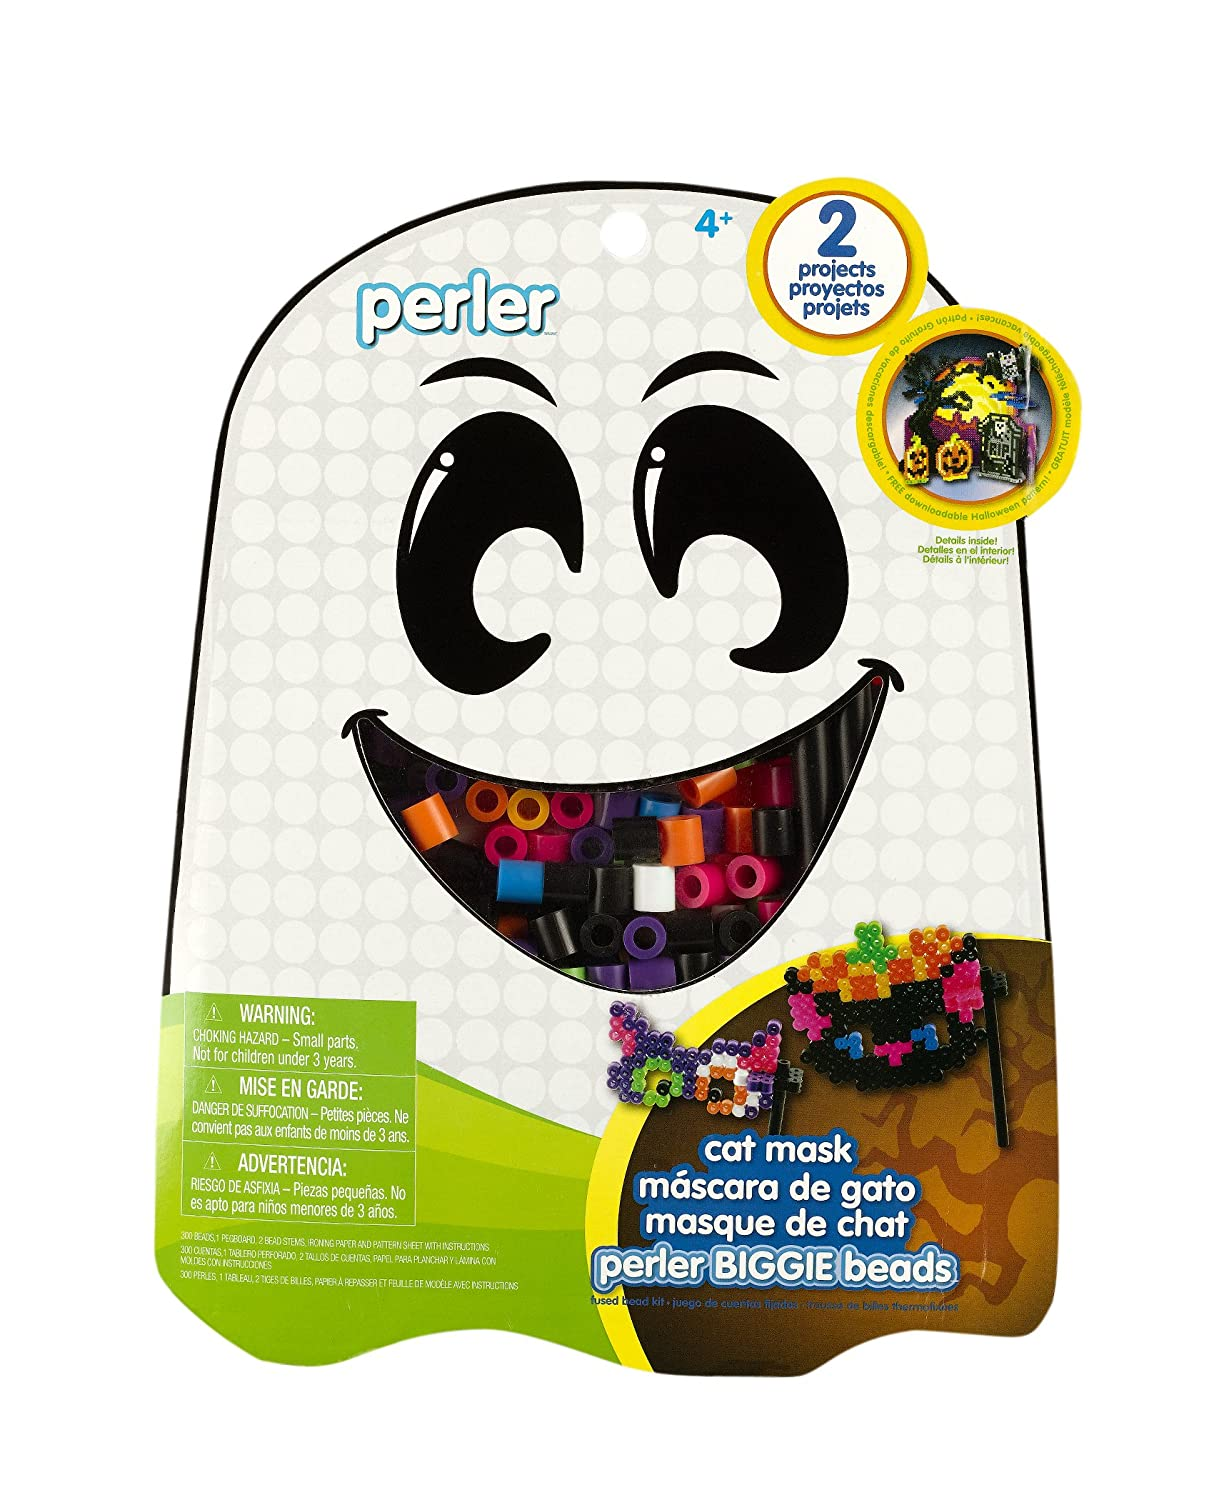 Amazon.com: Perler Beads Cat Mask Biggie Bead Fused Bead Kit: Arts, Crafts & Sewing